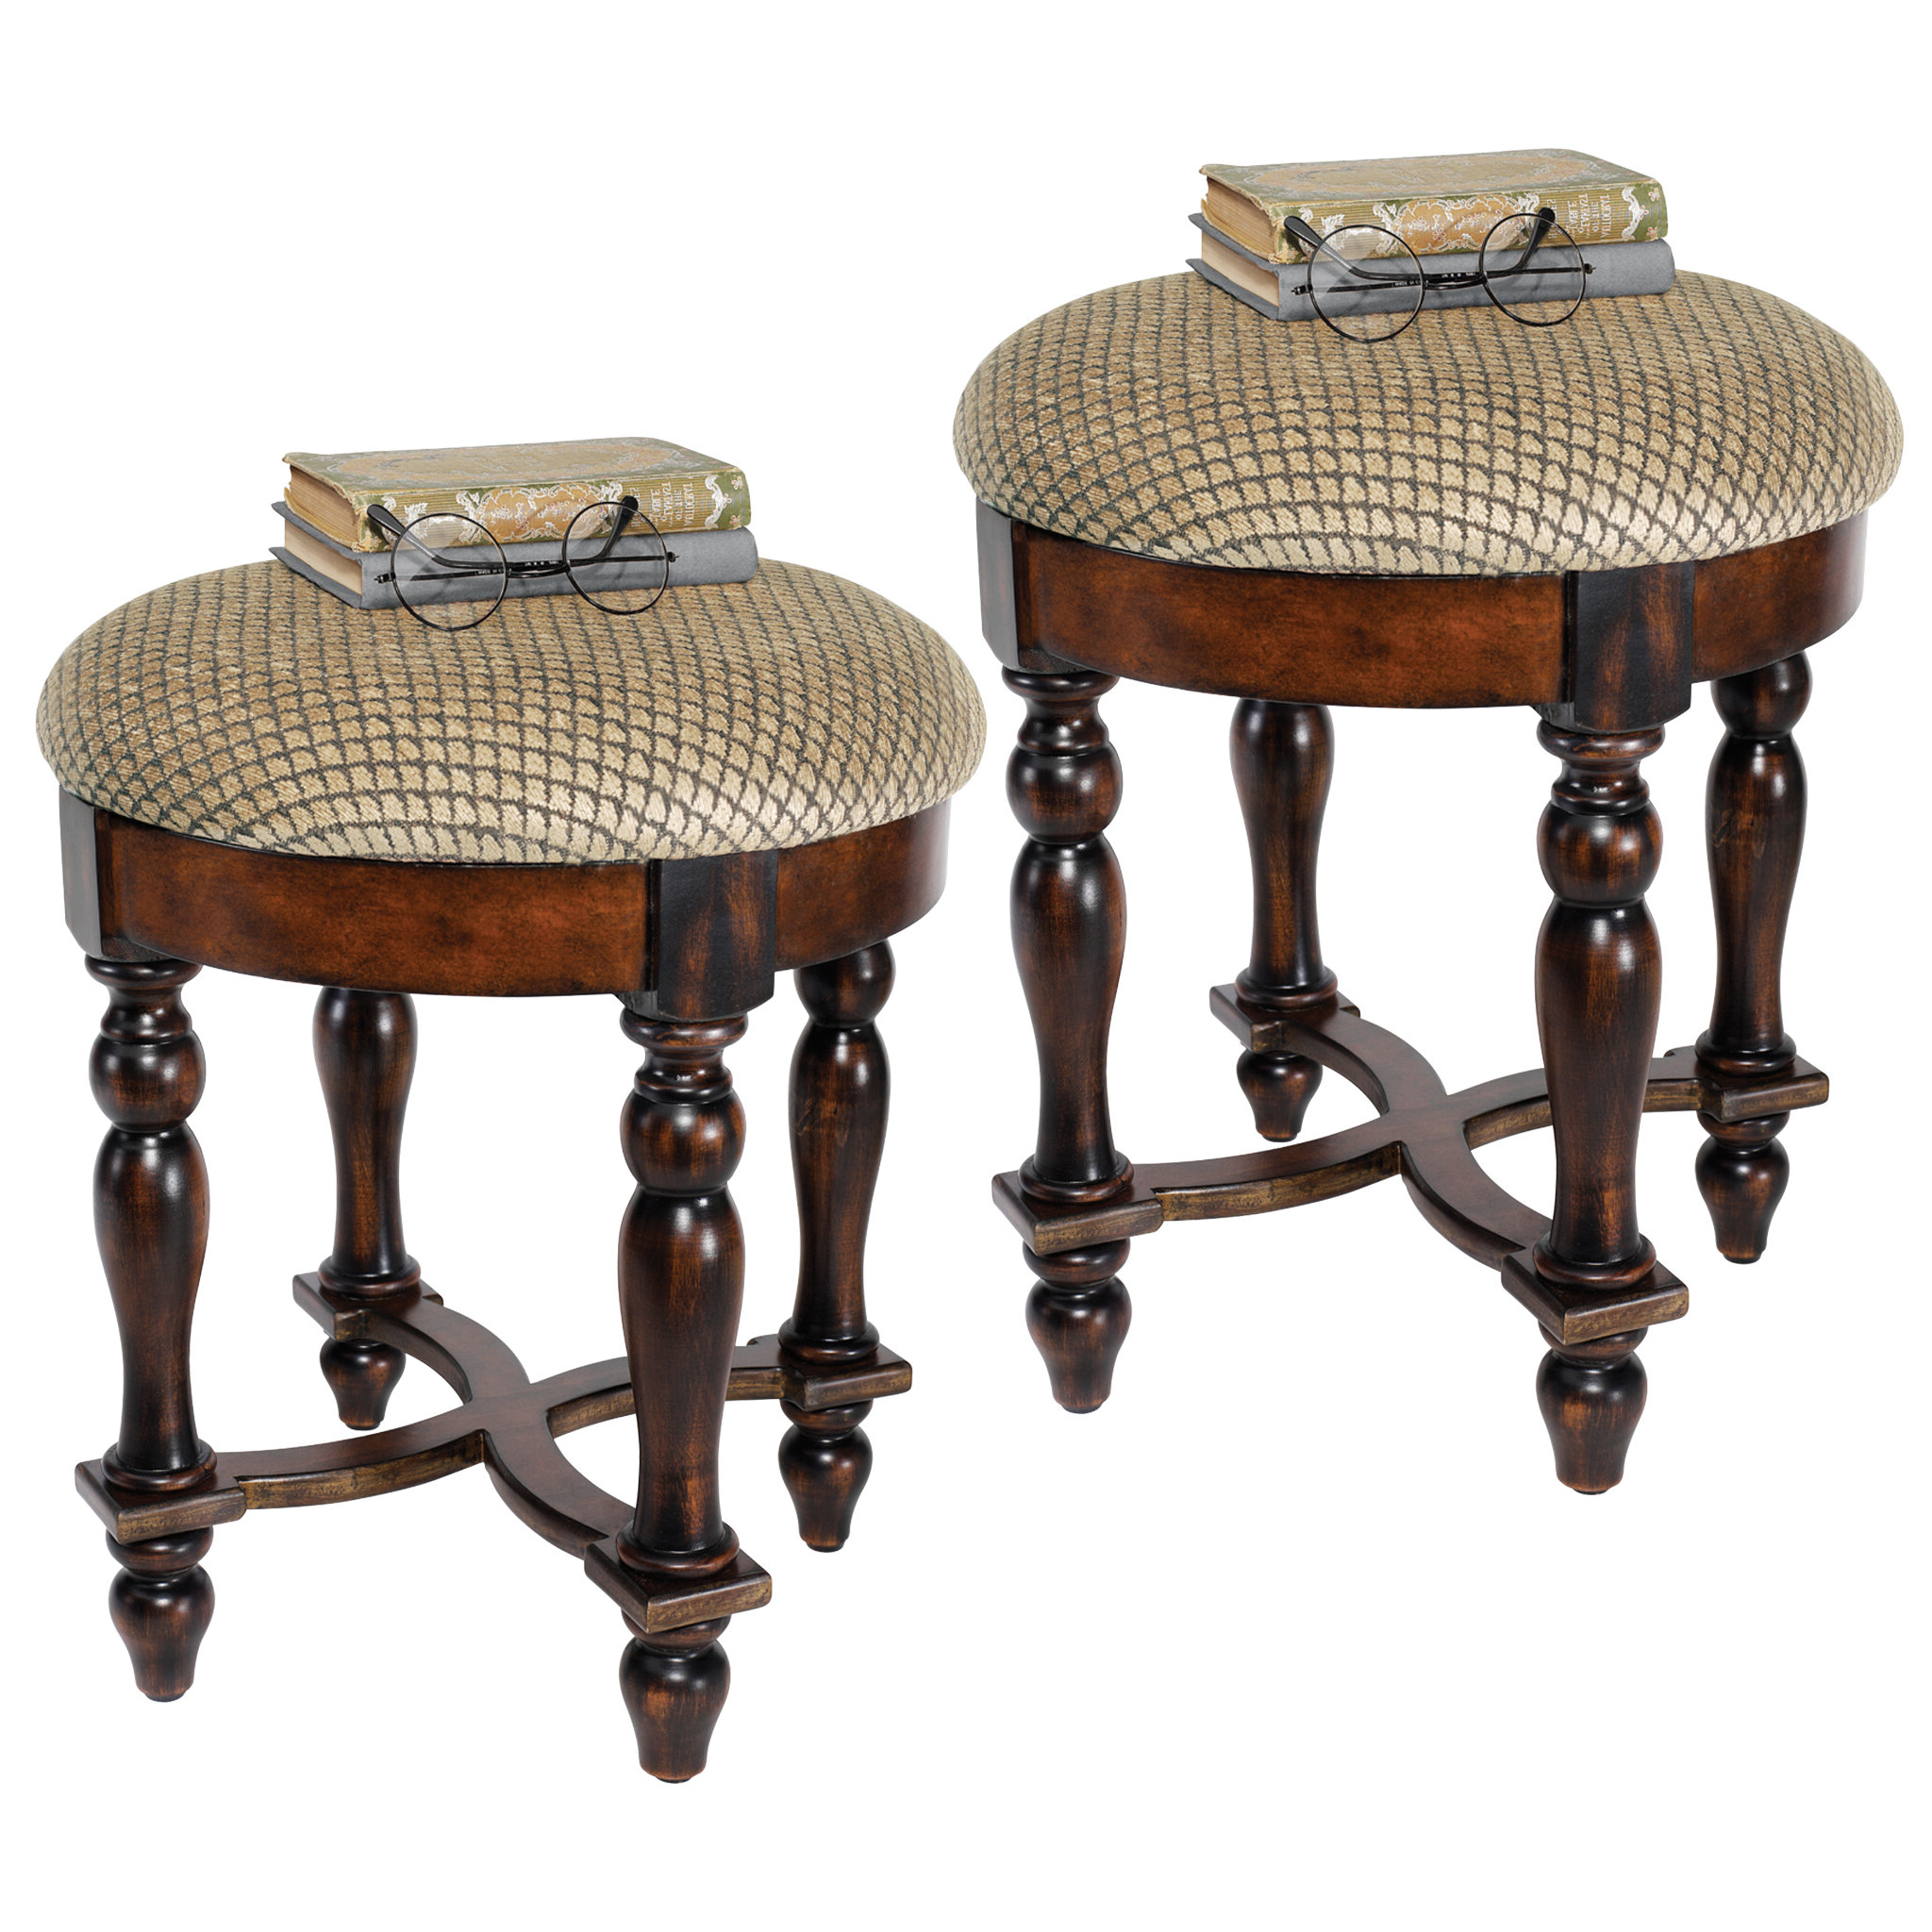 Best And Newest Grand Duchess Boudoir Vanity Stool With Middlet Owl Ceramic Garden Stools (View 22 of 30)